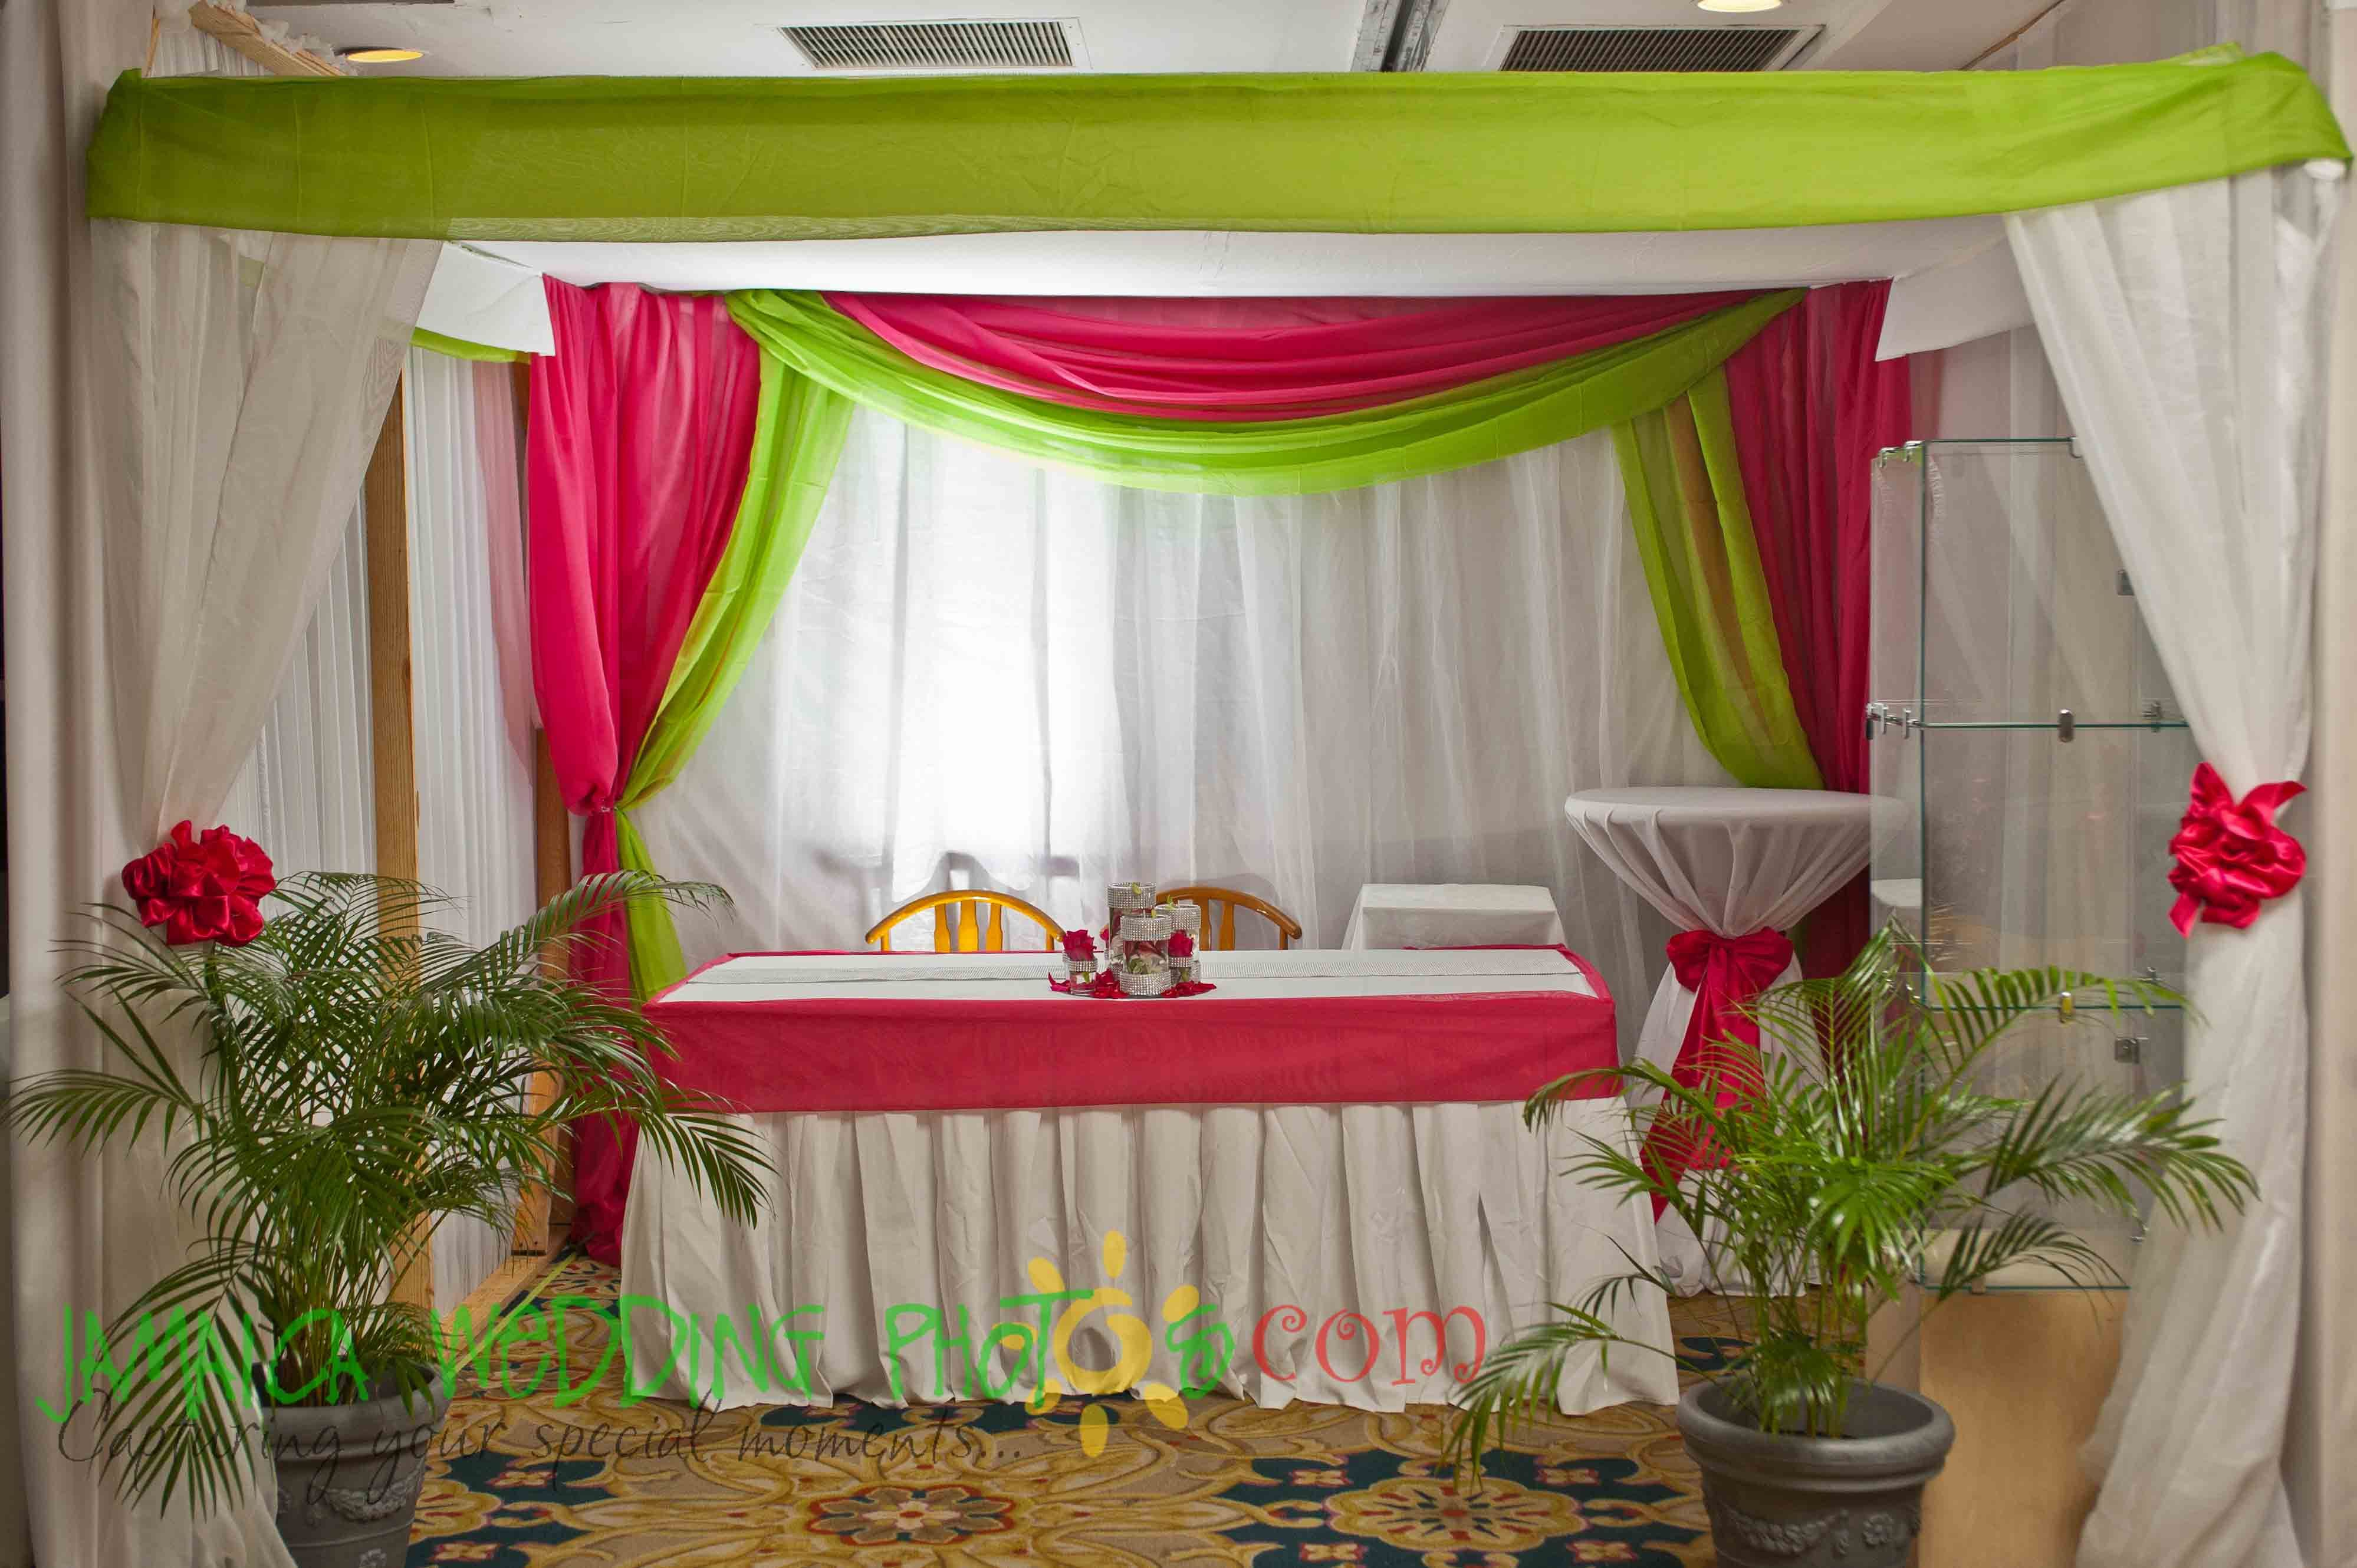 Hot pink and apple green wedding decor decor by helen g events hot pink and apple green wedding decor decor by helen g events jamaica junglespirit Gallery